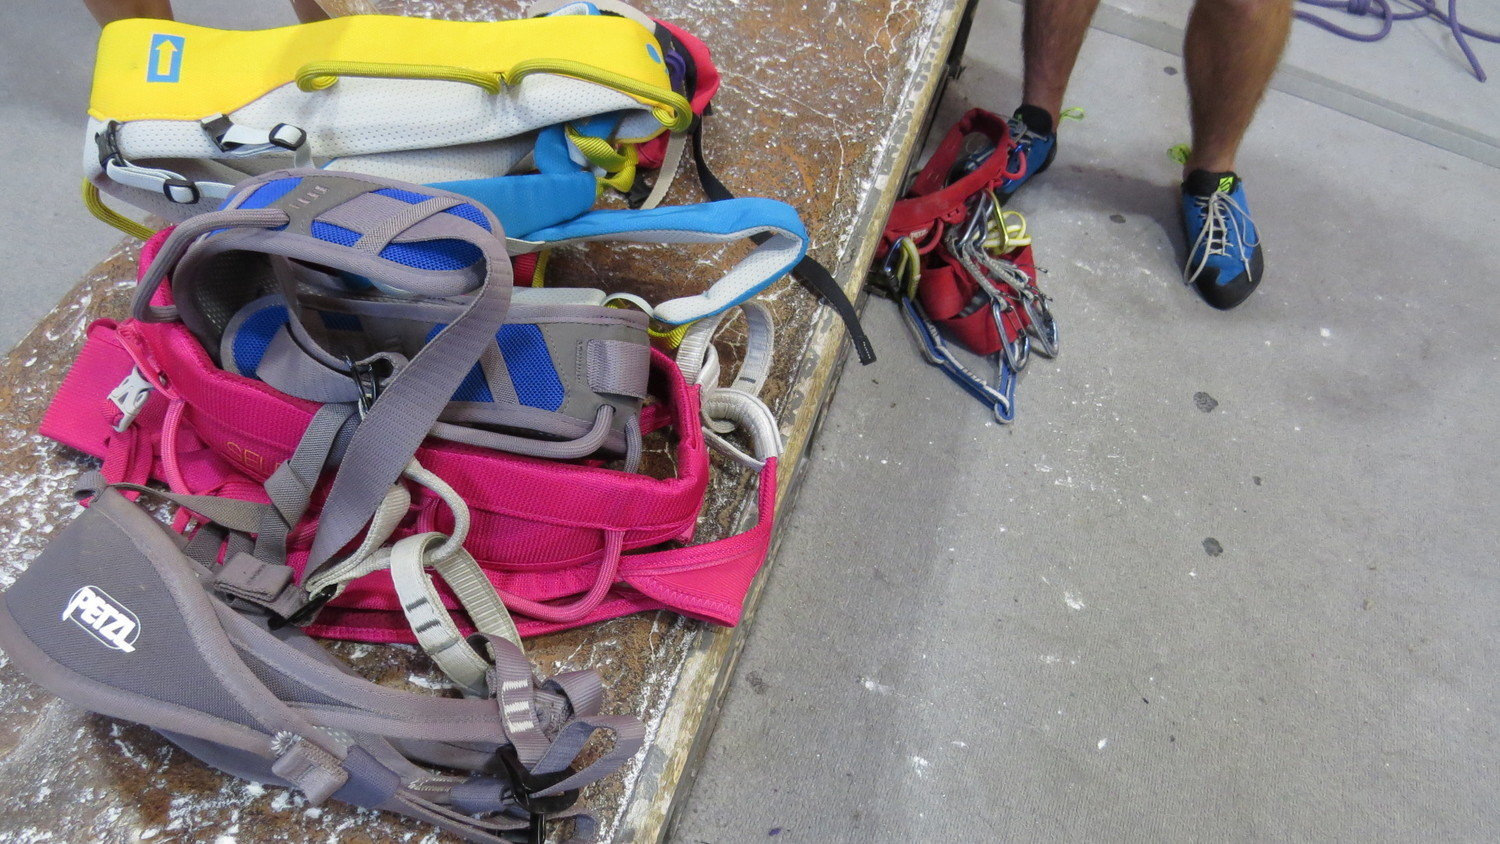 The number of climbing harnesses available can be overwhelming.   Photo by Liz Thomas